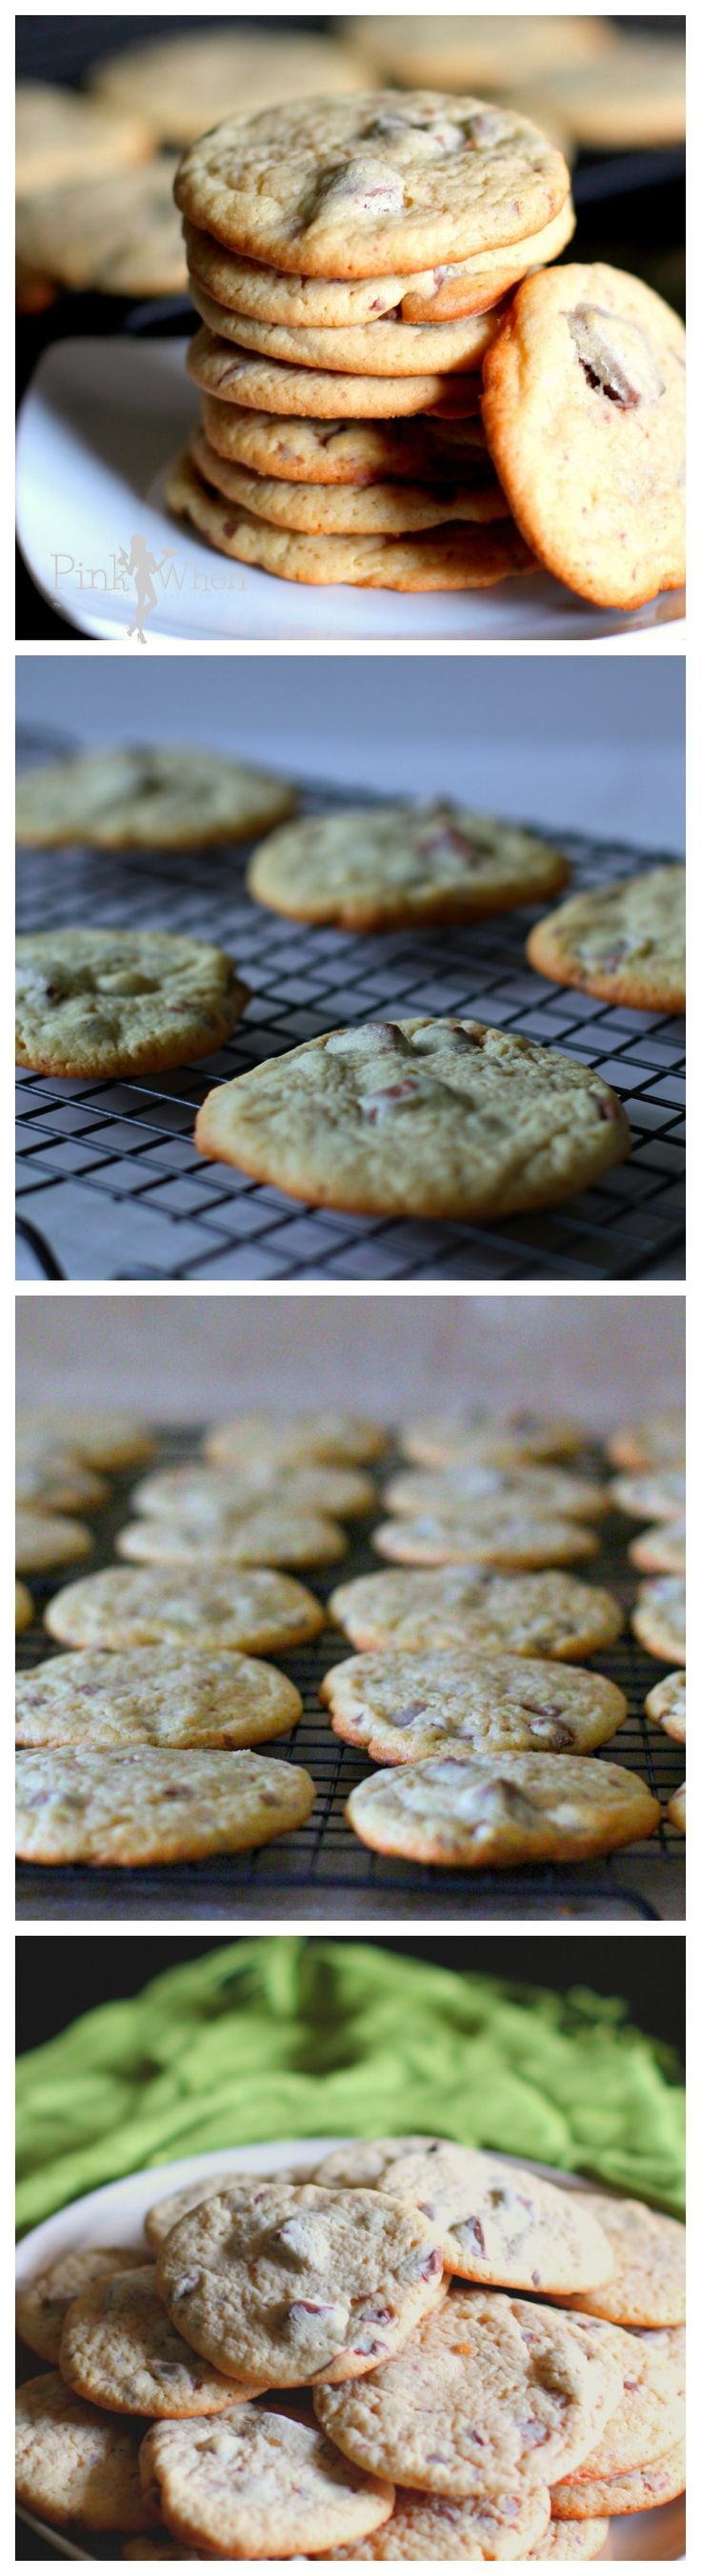 This recipe takes a delicious homemade chocolate chip cookie recipe over the top when adding in wild huckleberry milk chocolate!